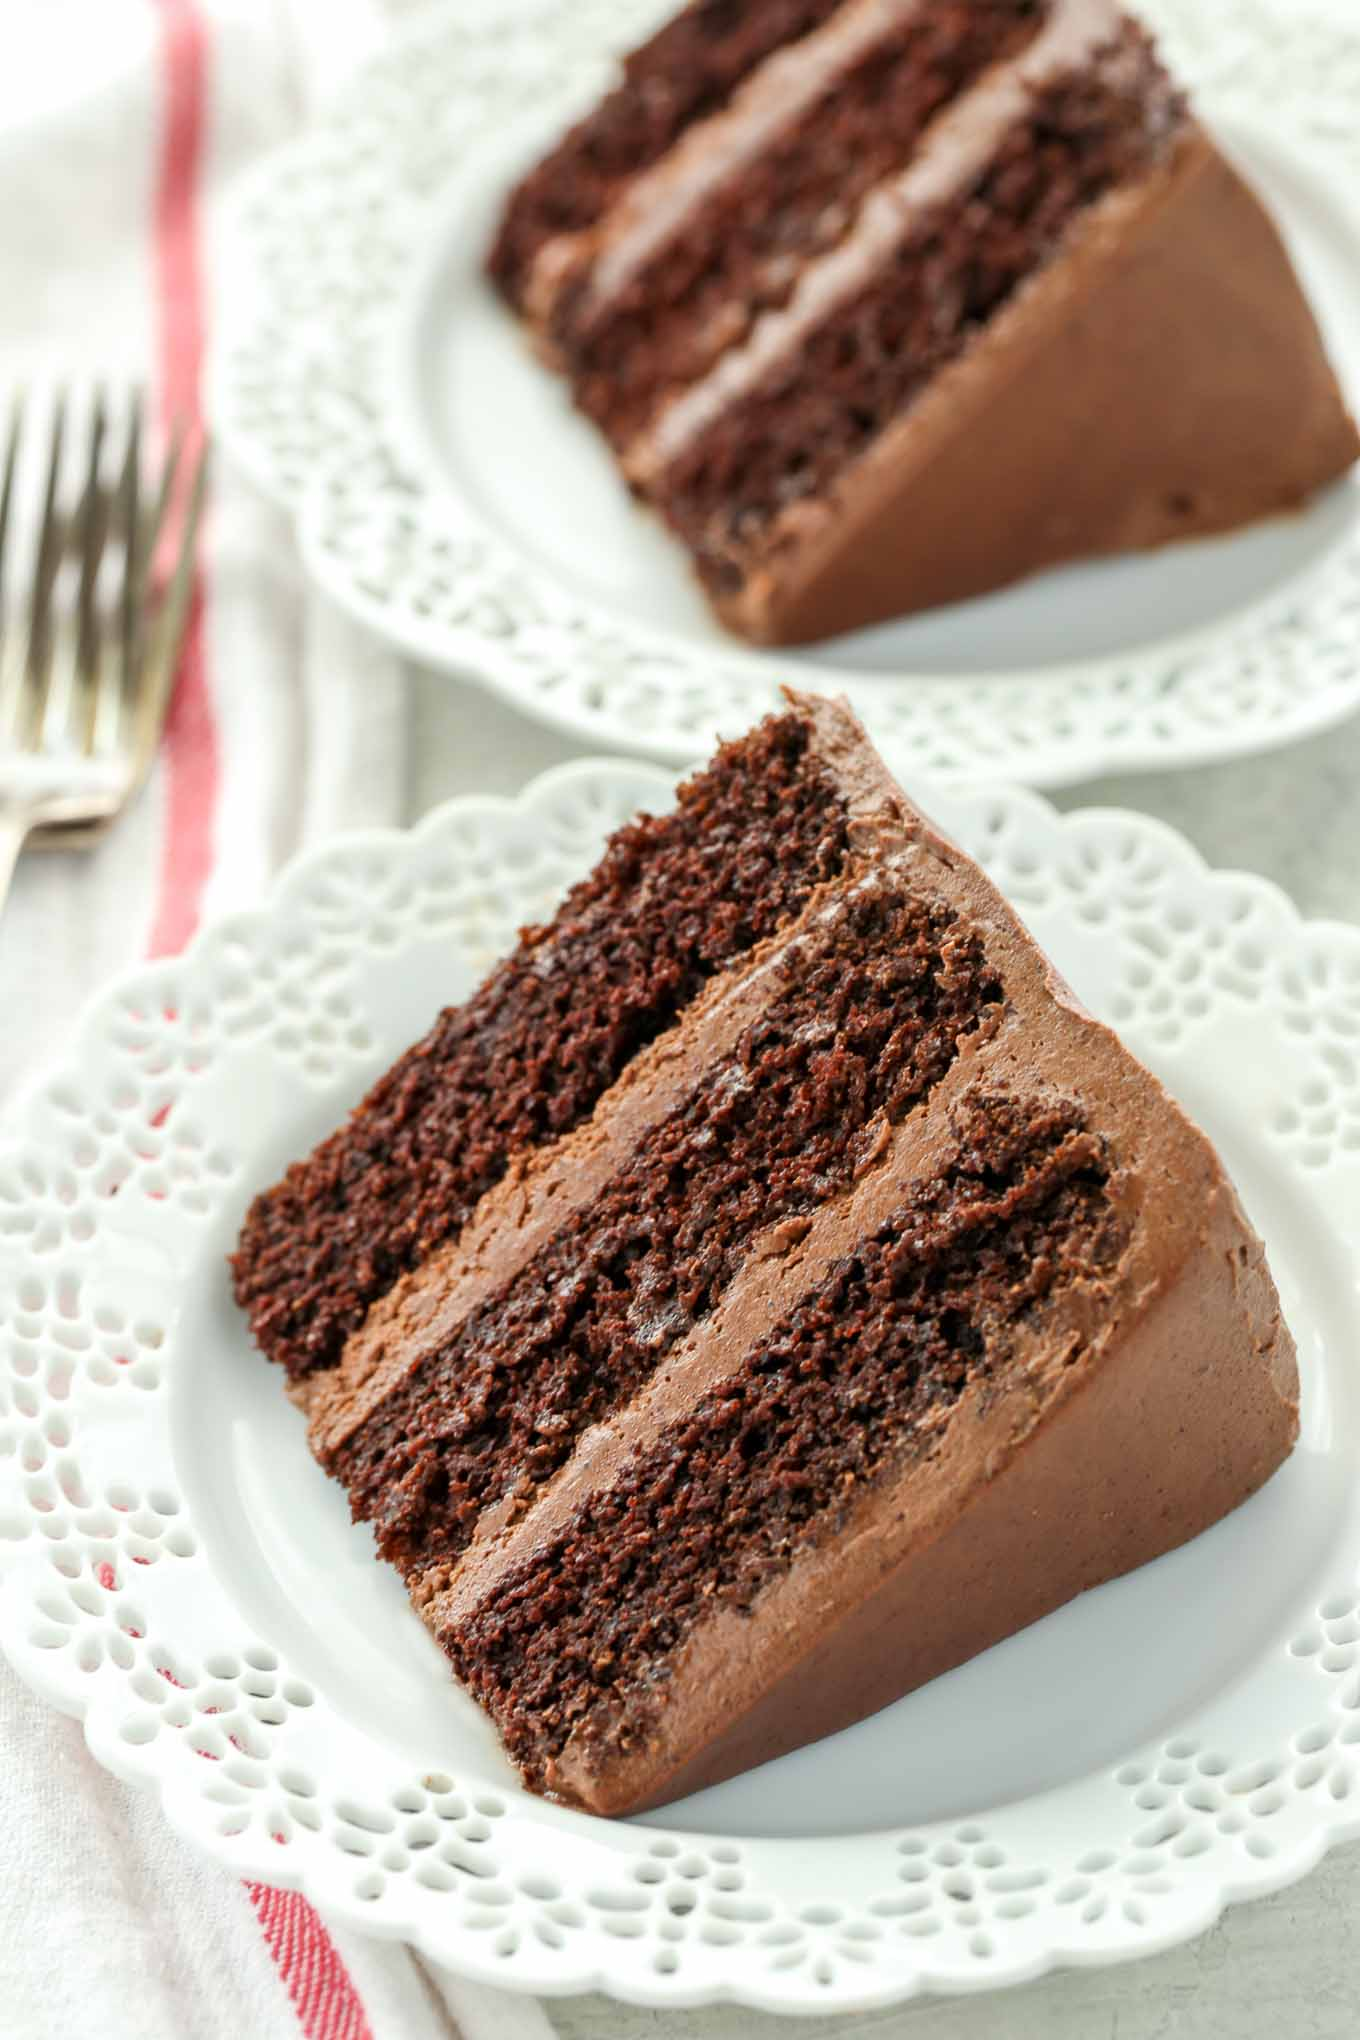 Forum on this topic: How to Adjust a Cake Recipe for , how-to-adjust-a-cake-recipe-for/